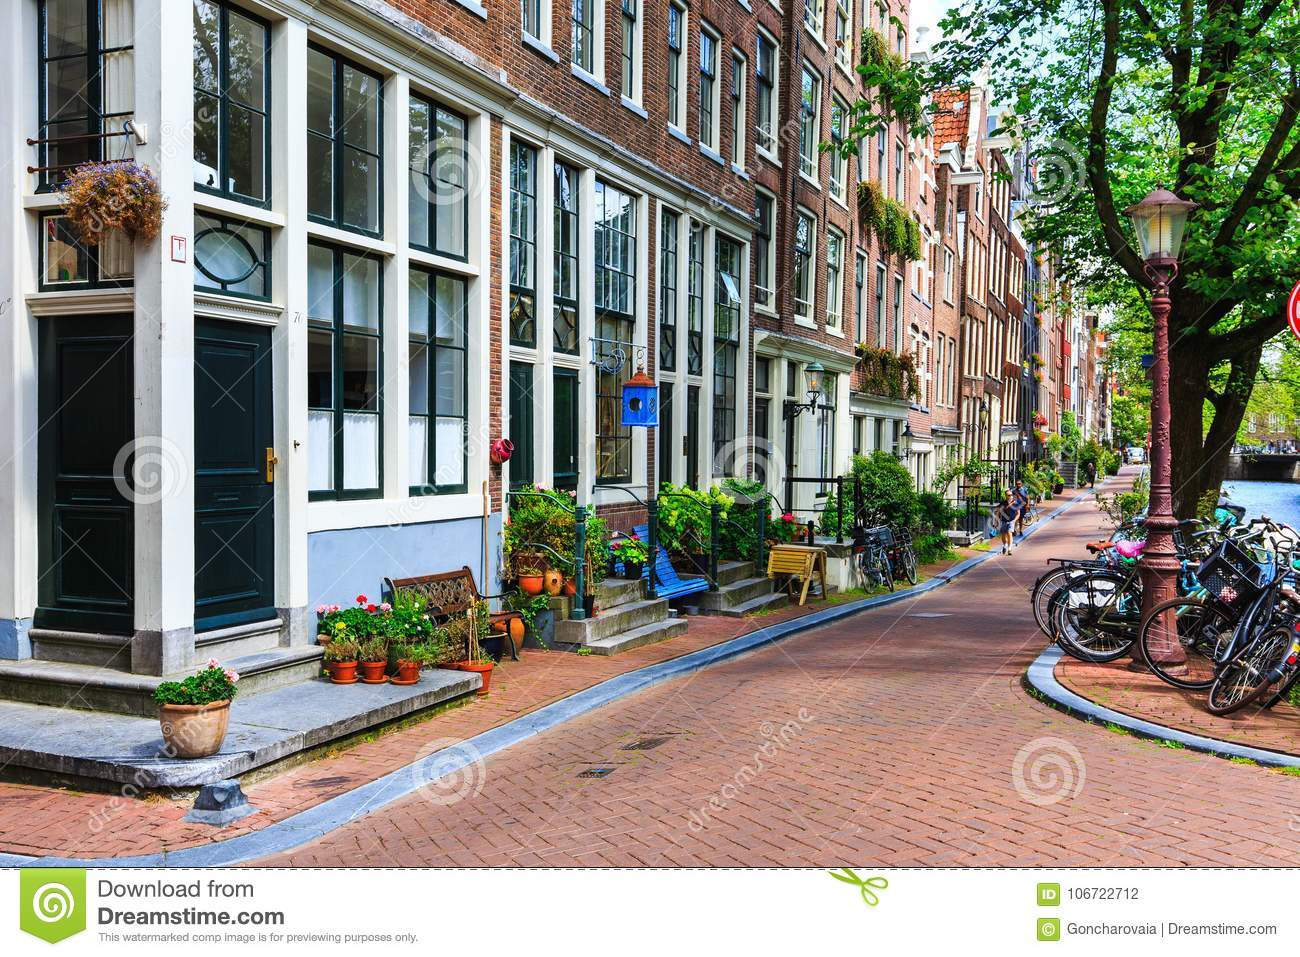 Traditional dutch houses, bicycles parked on city street at summer. Typical holland architecture. Exterior. Amsterdam, Netherlands